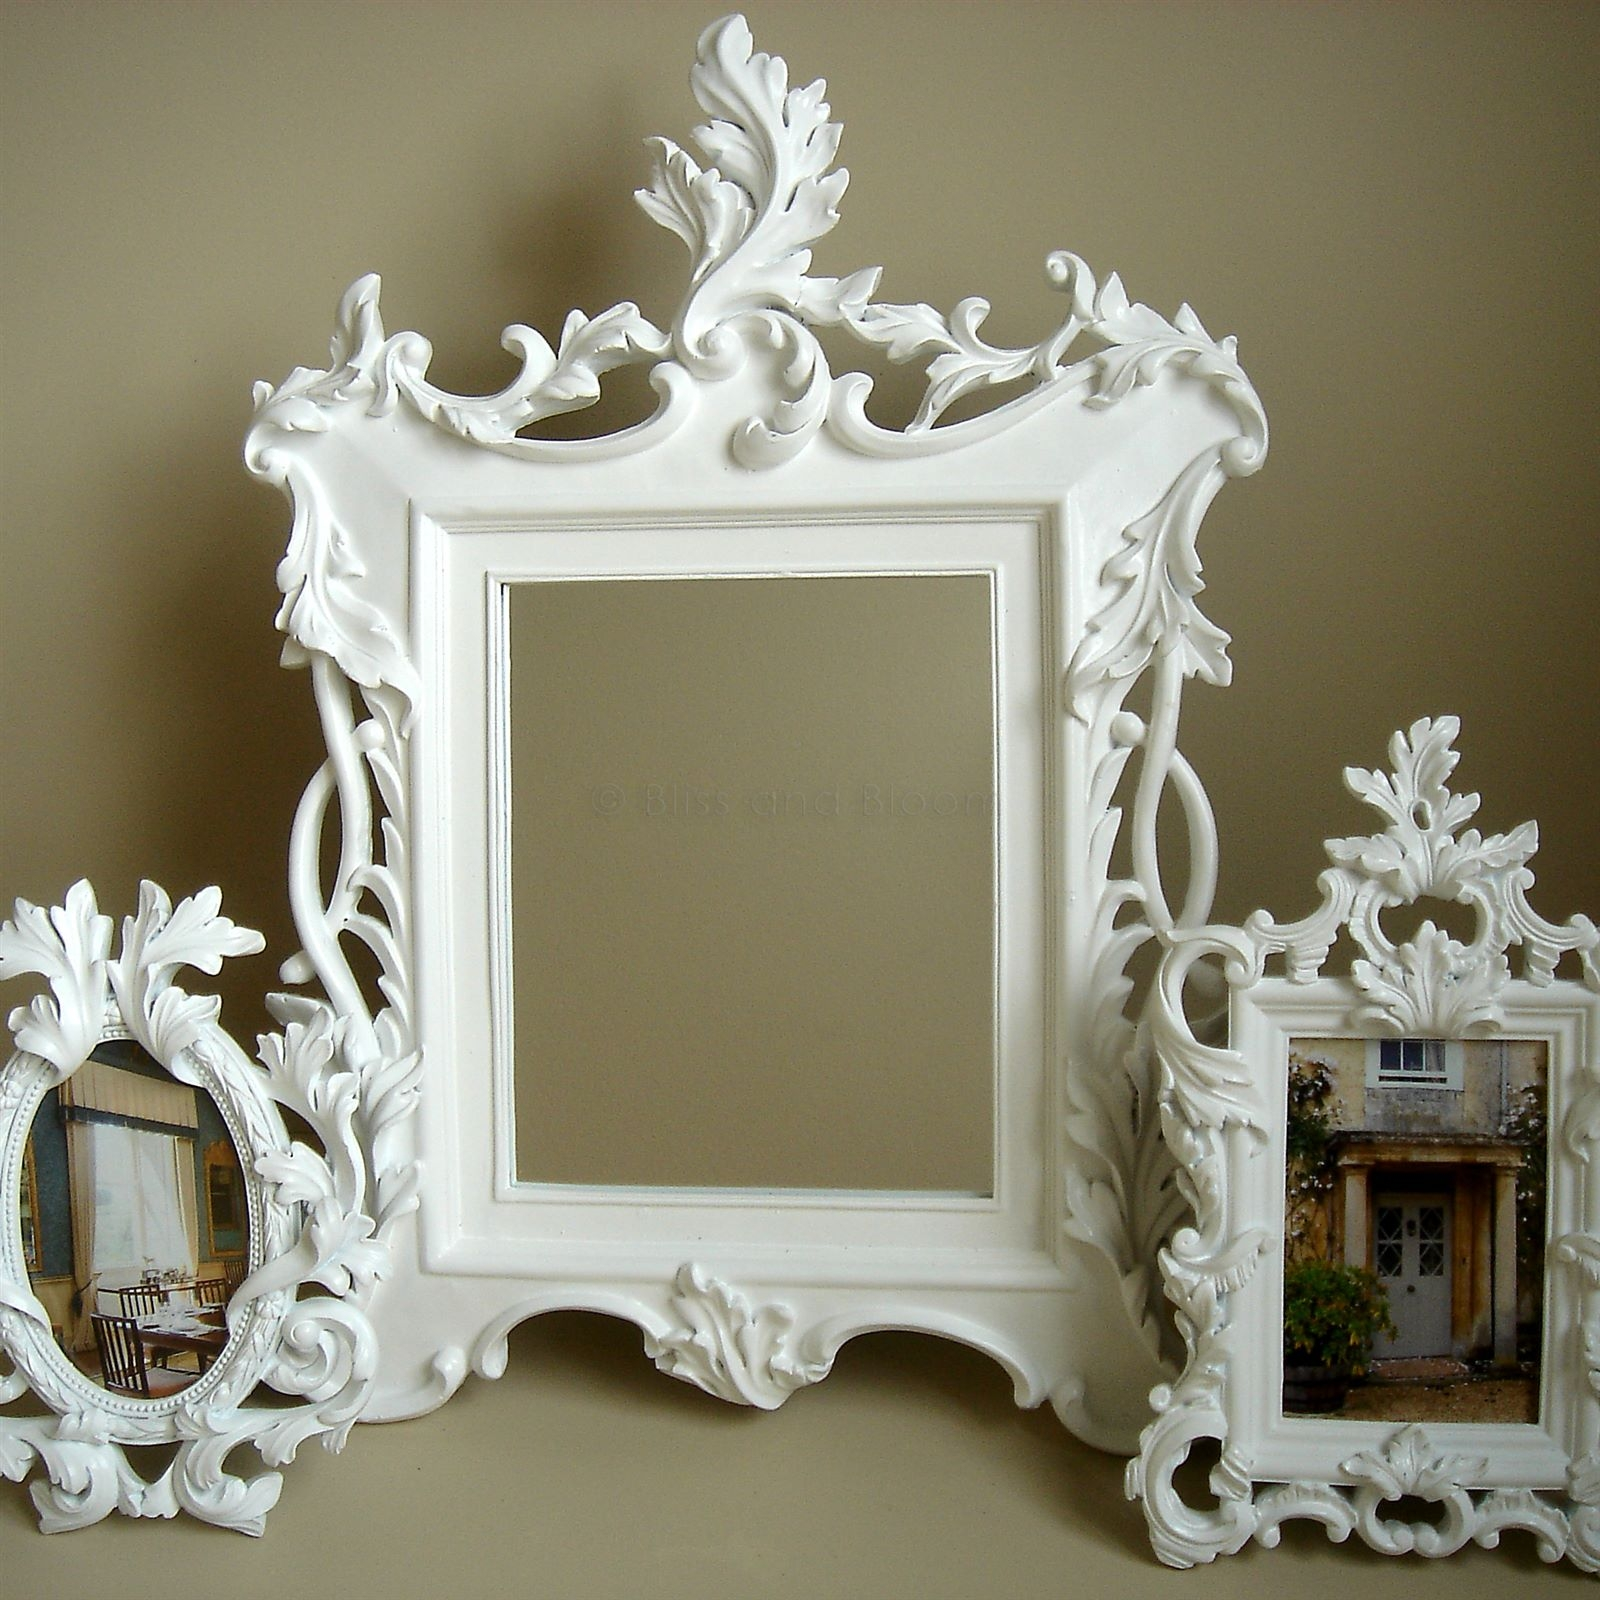 White Baroque Mirror Seconds Bliss And Bloom Ltd Throughout Baroque White Mirror (Image 15 of 15)